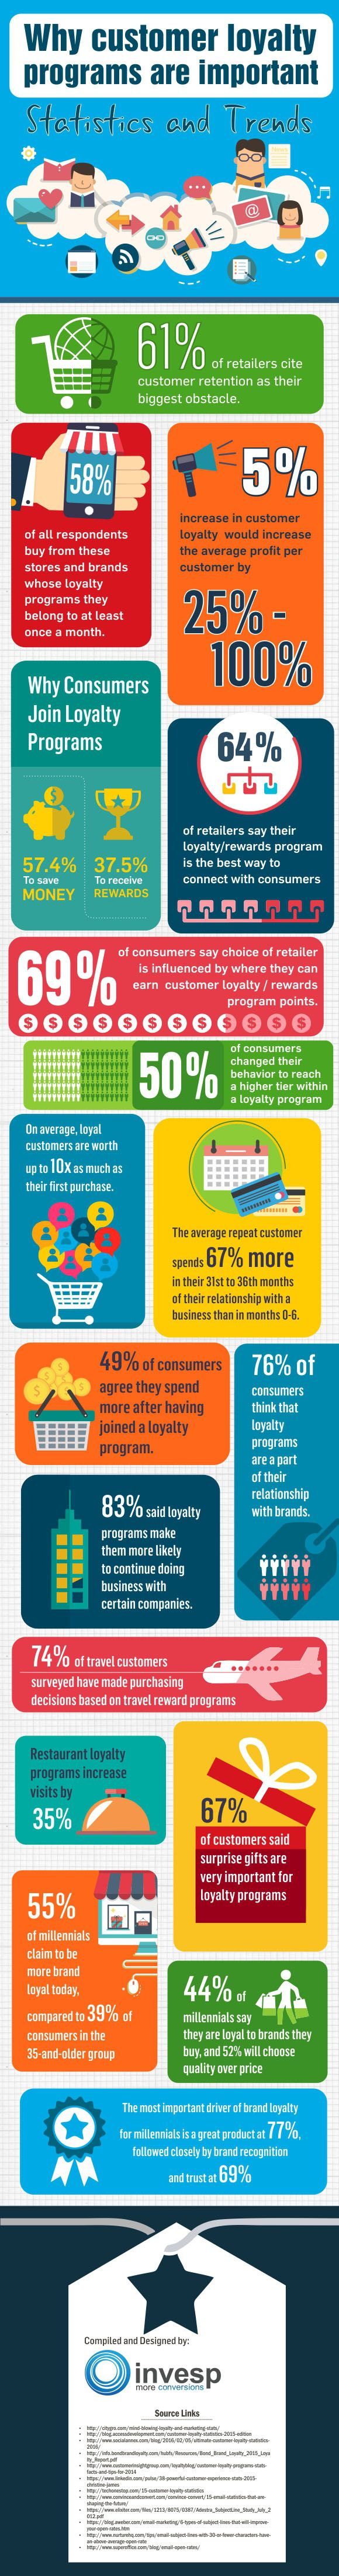 Why Customer Loyalty Programs Are Important Statistics and Trends